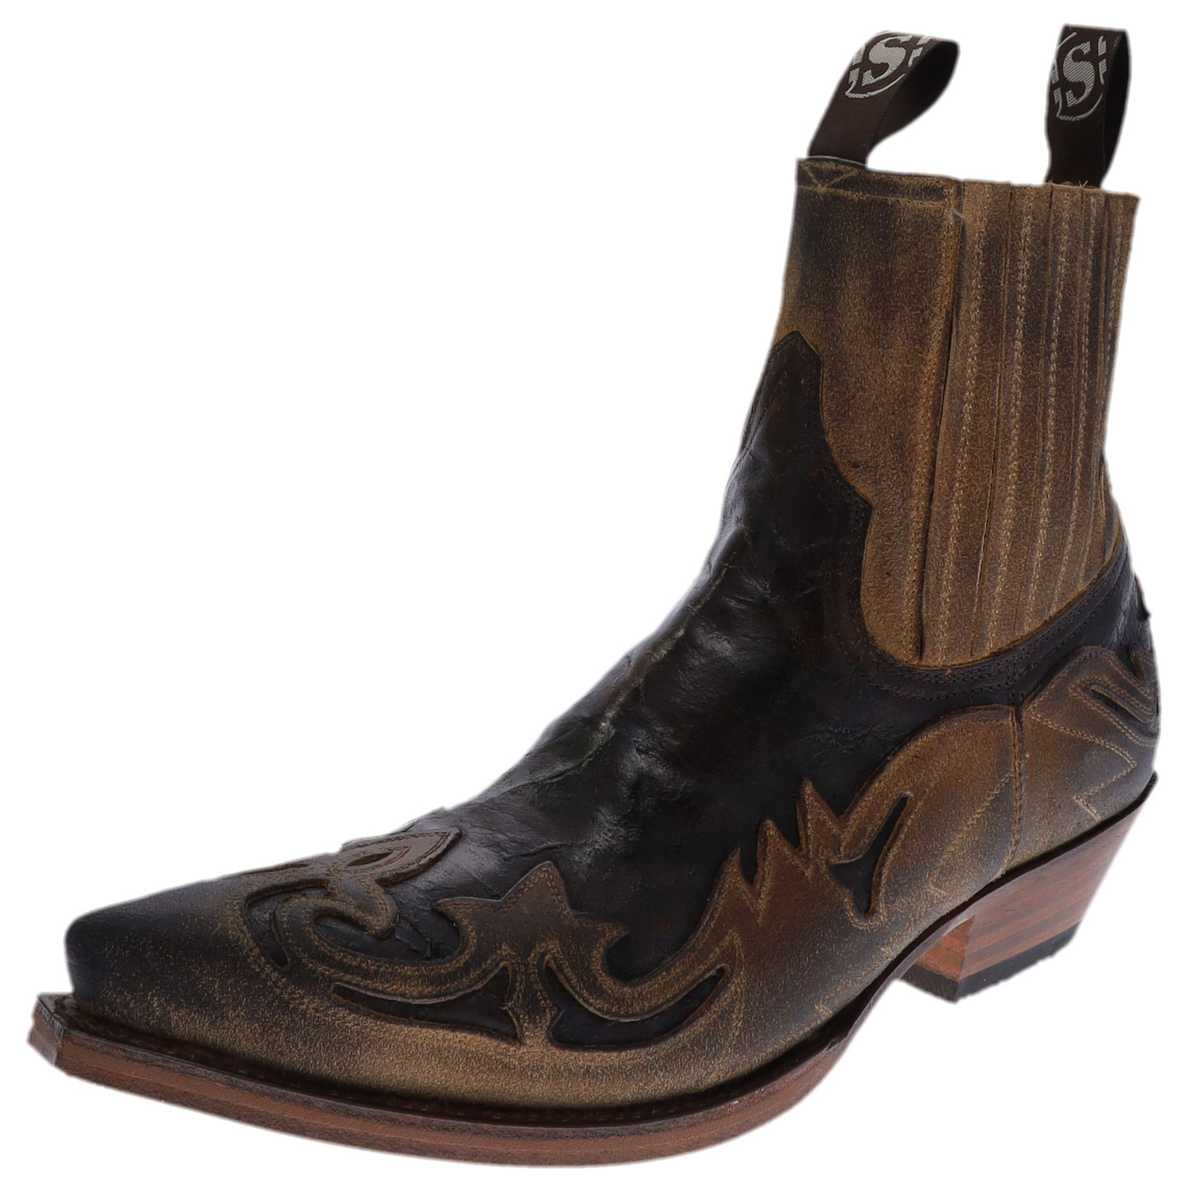 Sendra Boots 4660 Camello Western ankle boot - brown